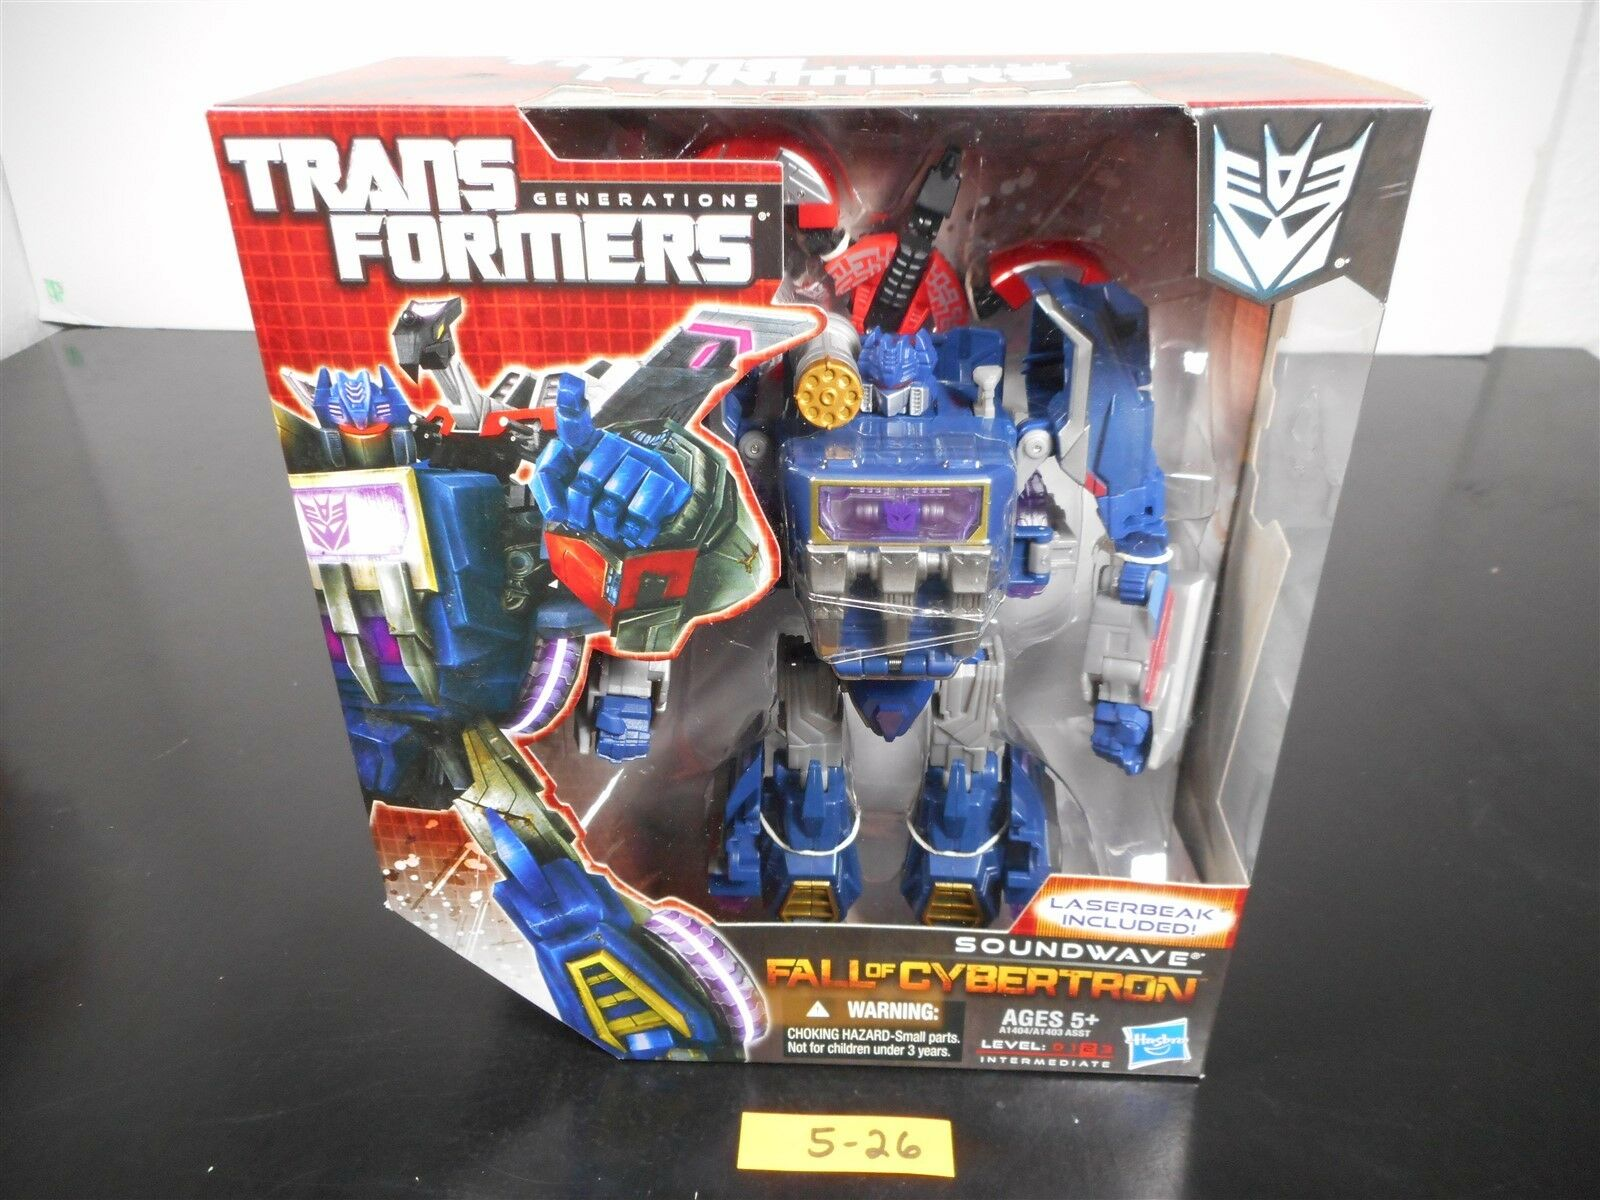 NEW SEALED  TRANSFORMERS GENERATIONS FALL OF CYBERTRON FOC SOUNDWAVE FIGURE 5-26